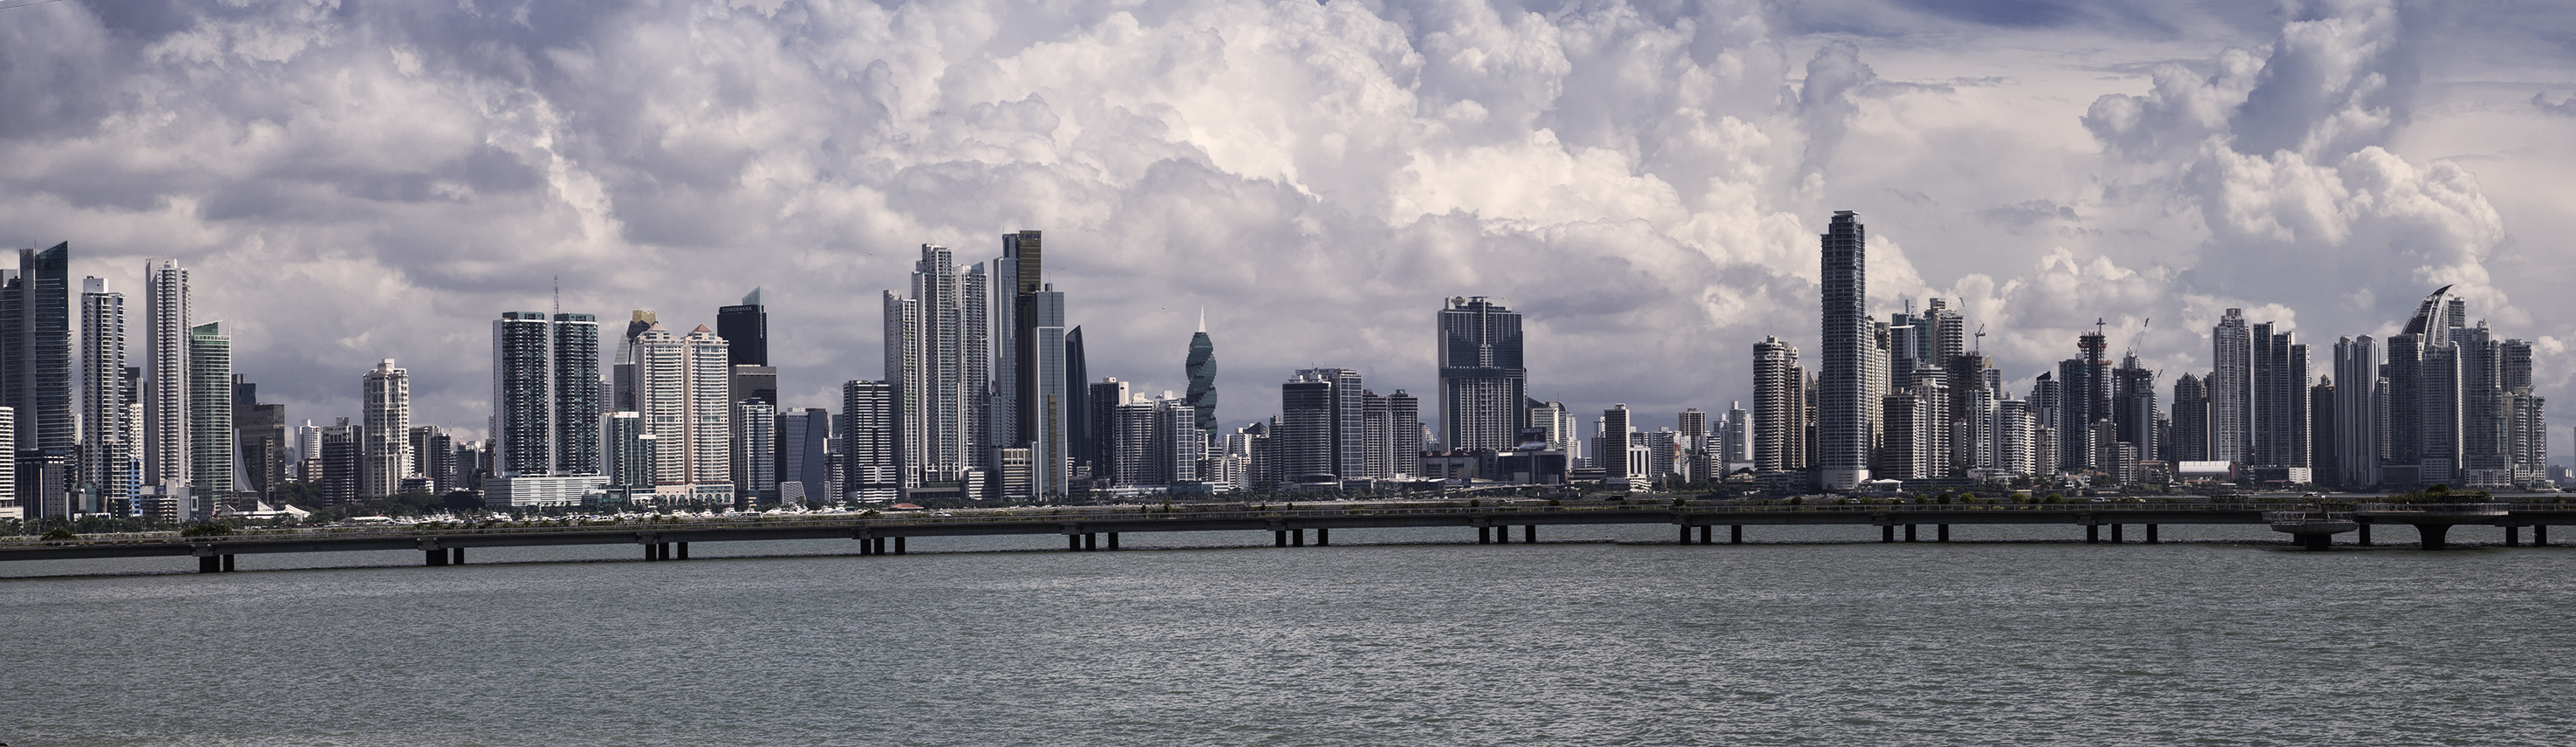 Panama City, Skyline Panama City